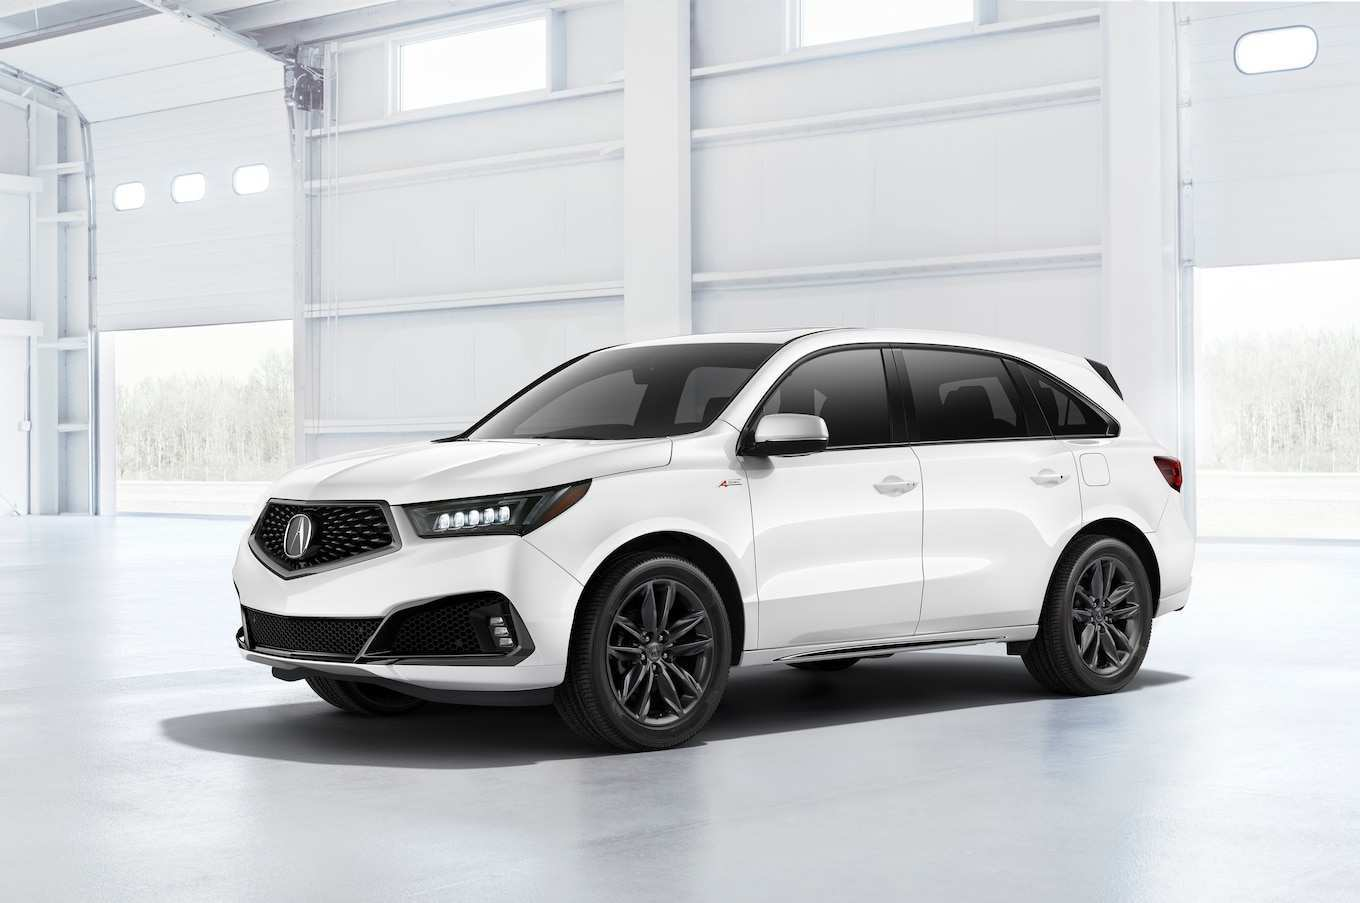 75 The Best Acura Wagon 2019 Specs Overview with Best Acura Wagon 2019 Specs